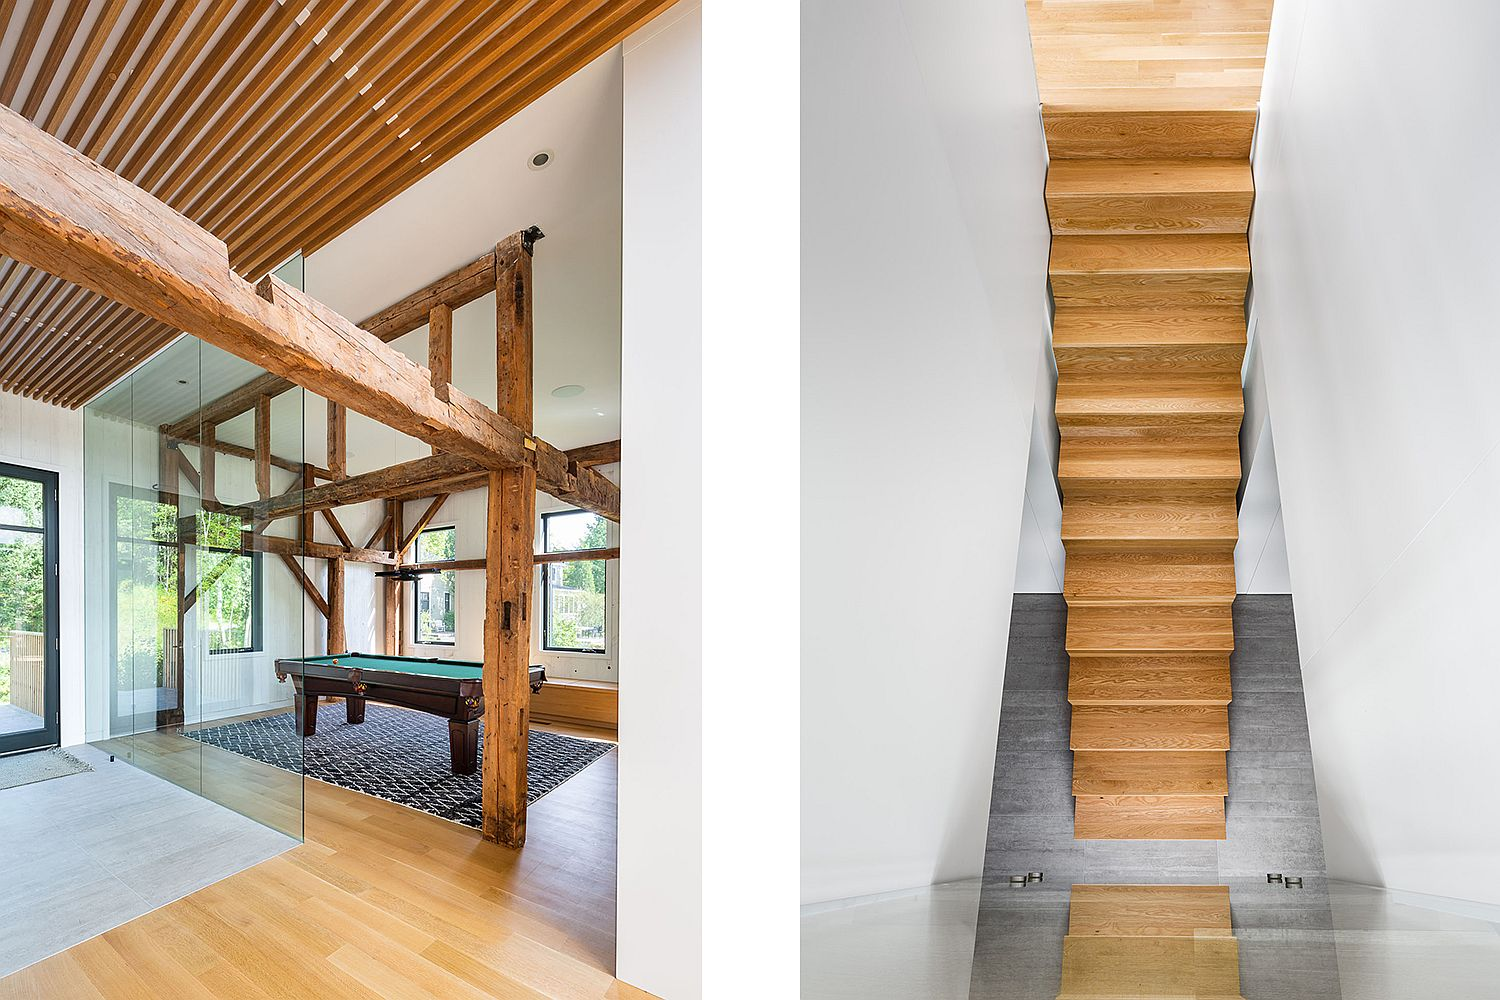 Wooden beams and staircase give the interior warmth and style